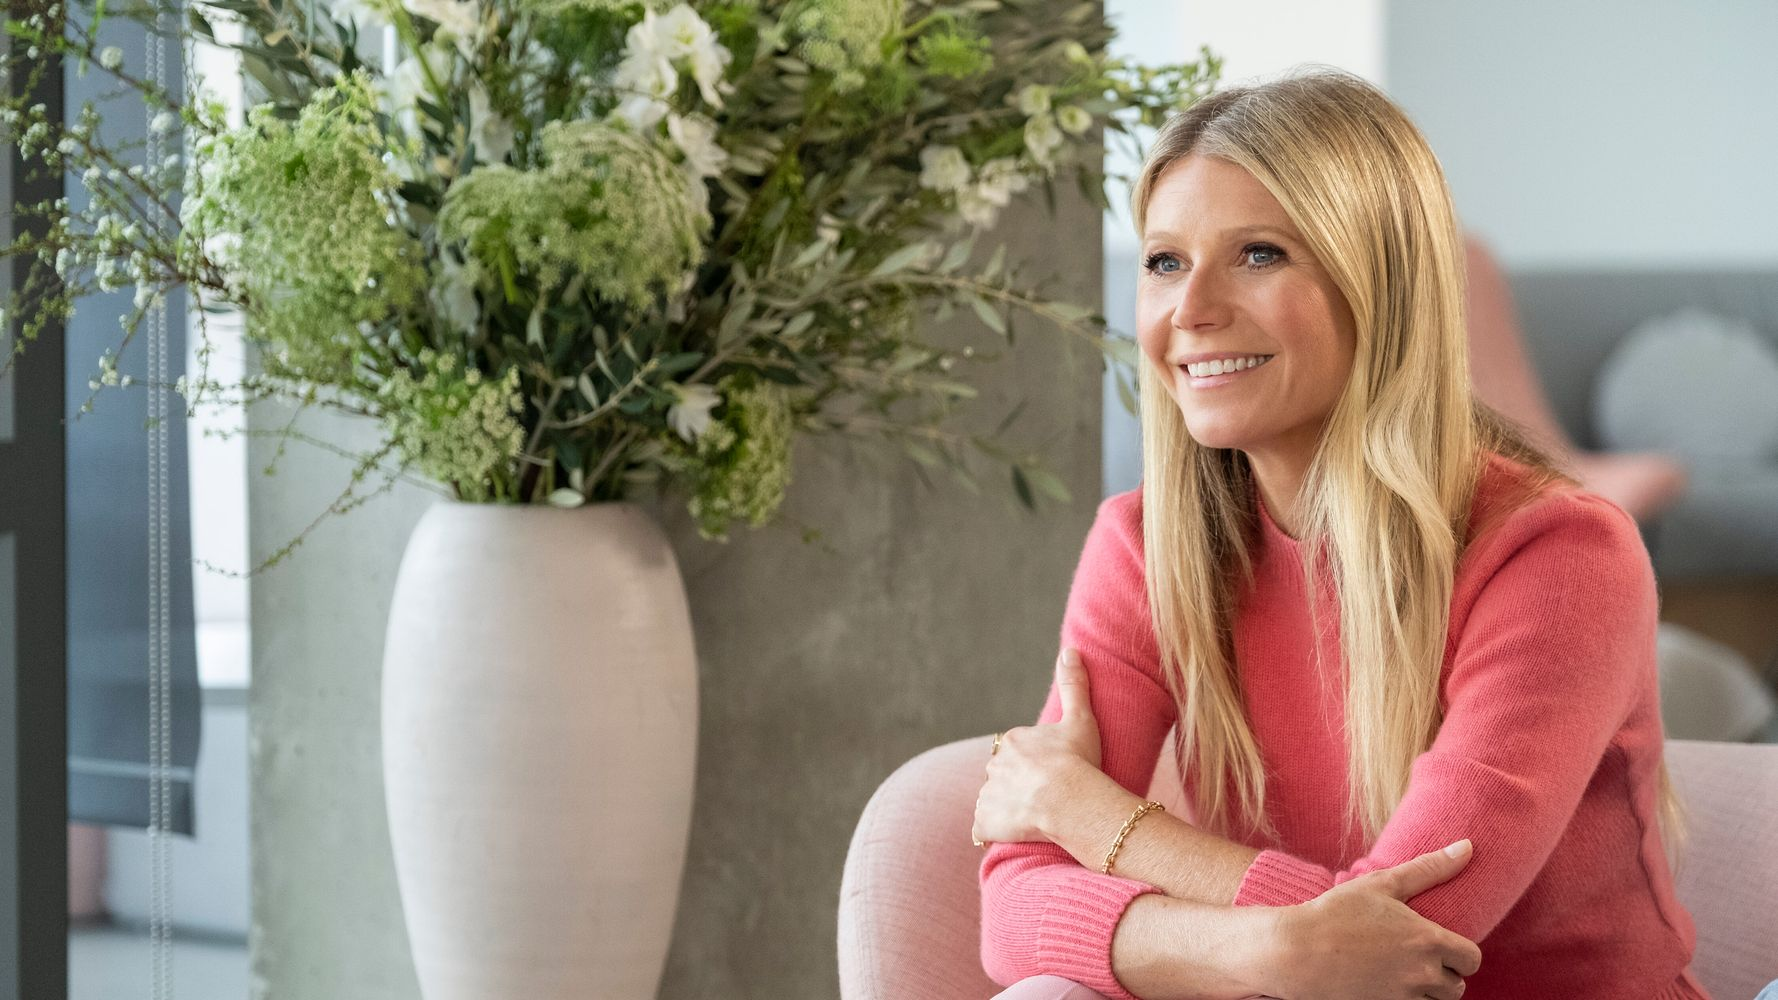 The 'Science' In Gwyneth Paltrow's The Goop Lab Seems Convincing... At First